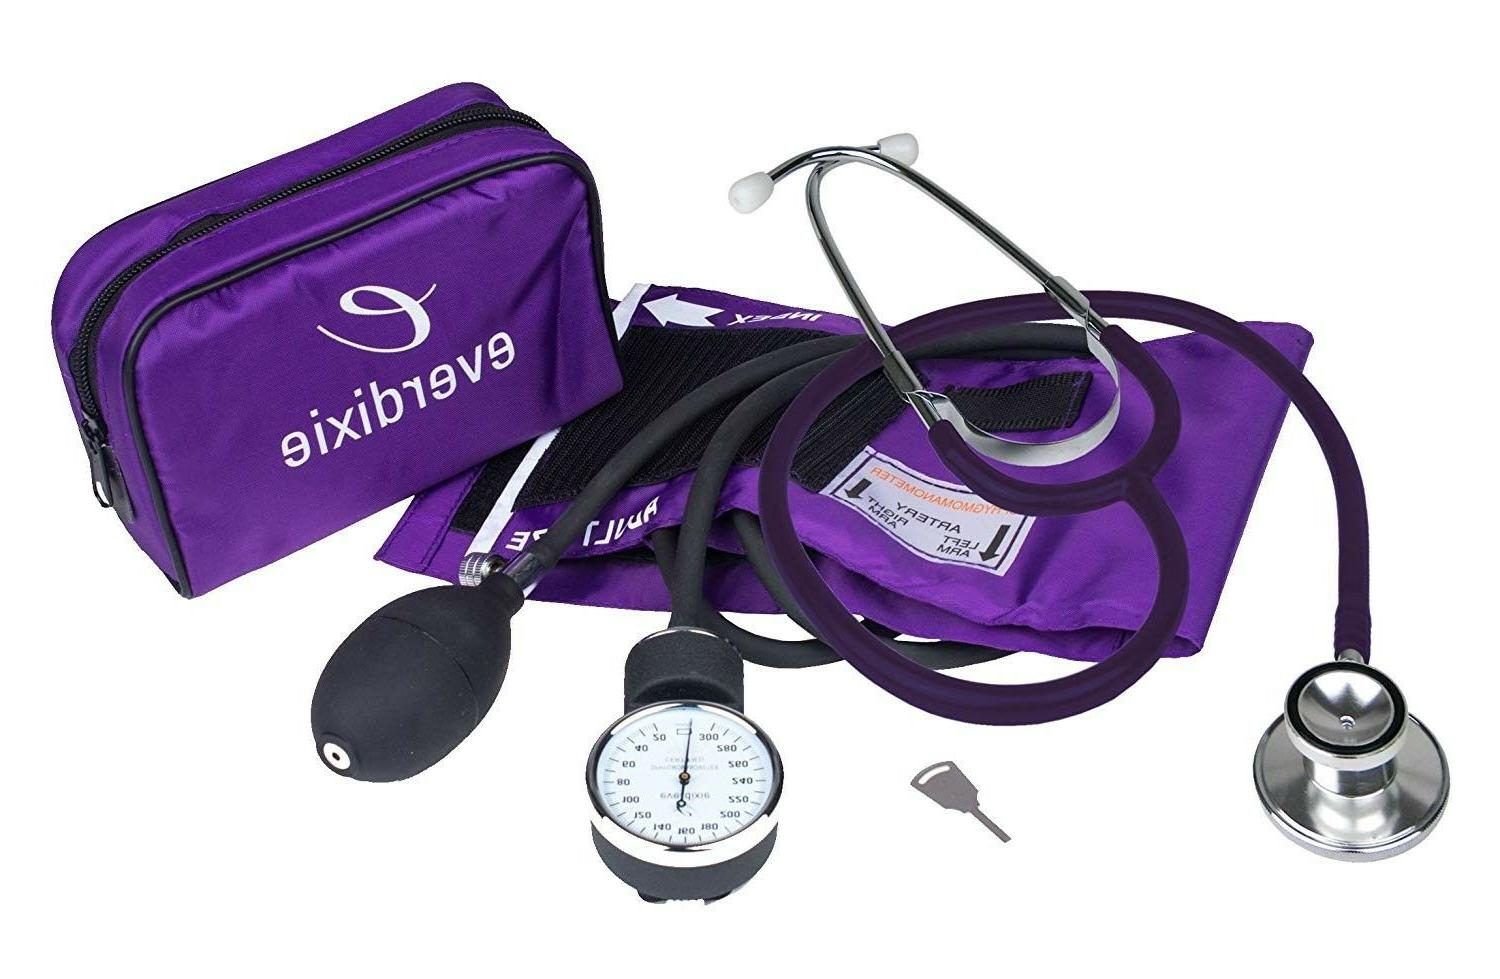 dixie ems blood pressure and dual stethoscope